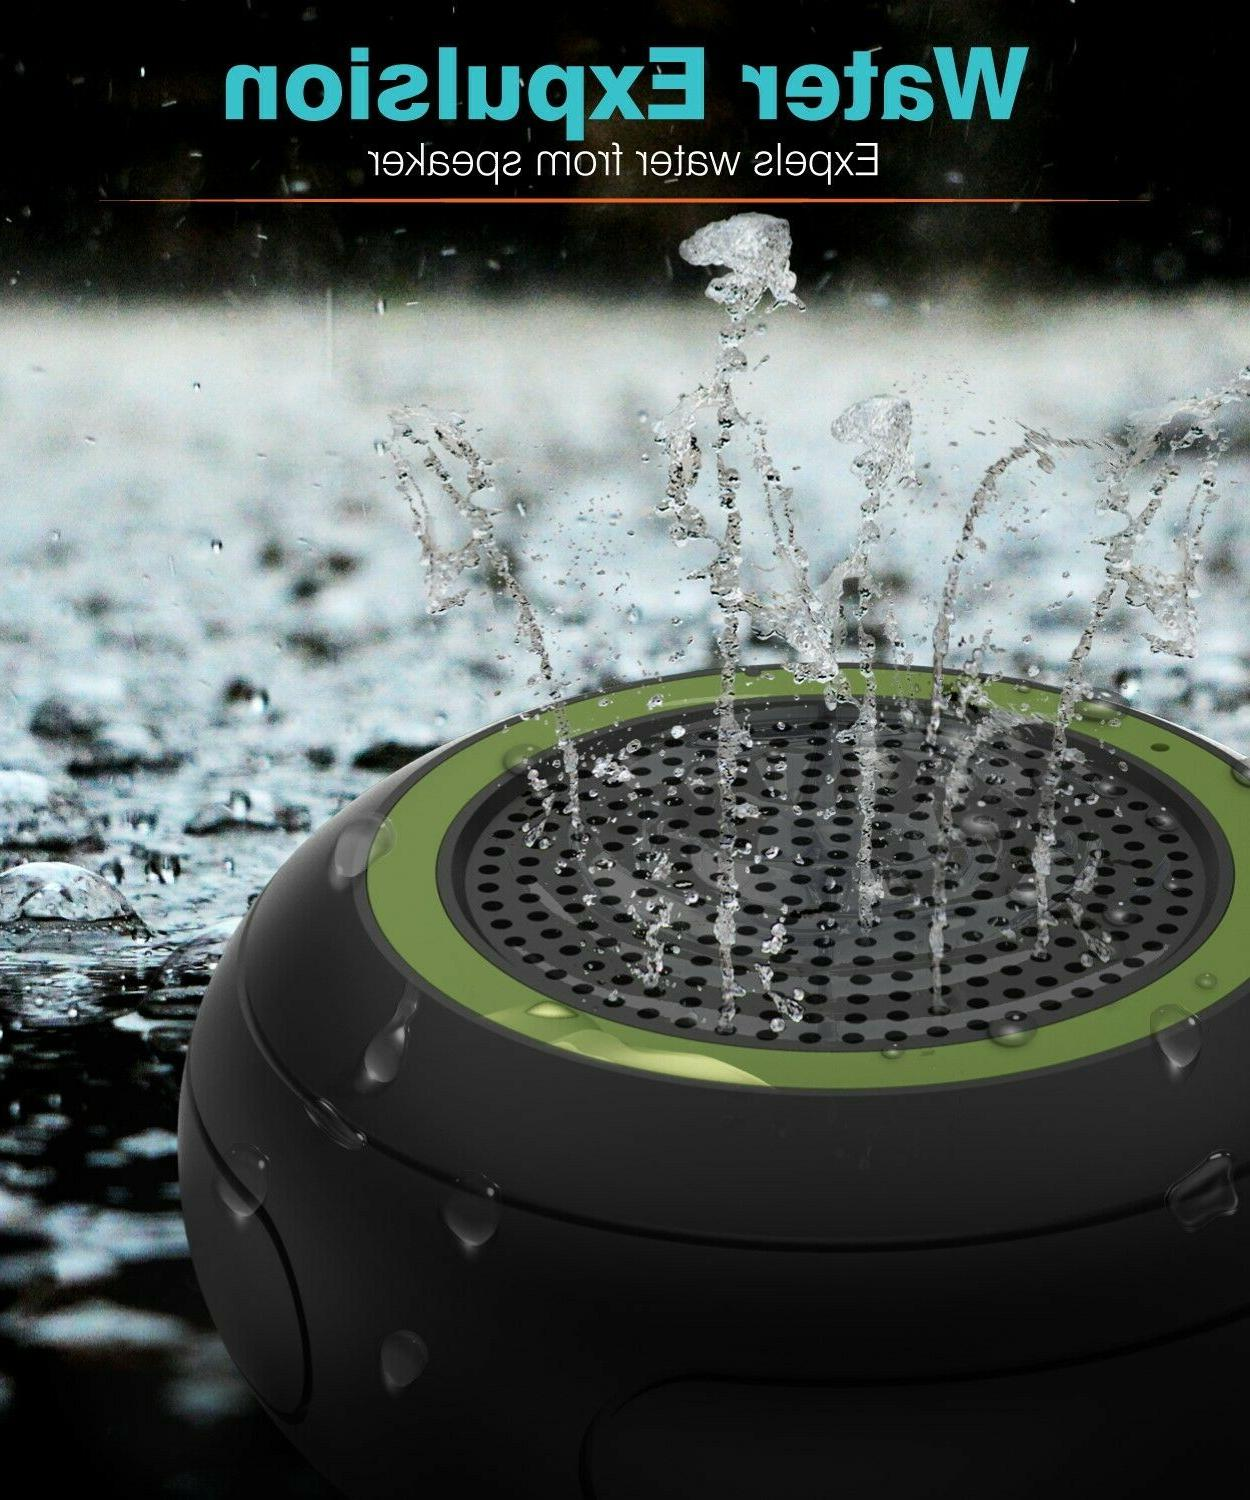 TWS Portable Bluetooth Stereo Speaker Wireless Shower